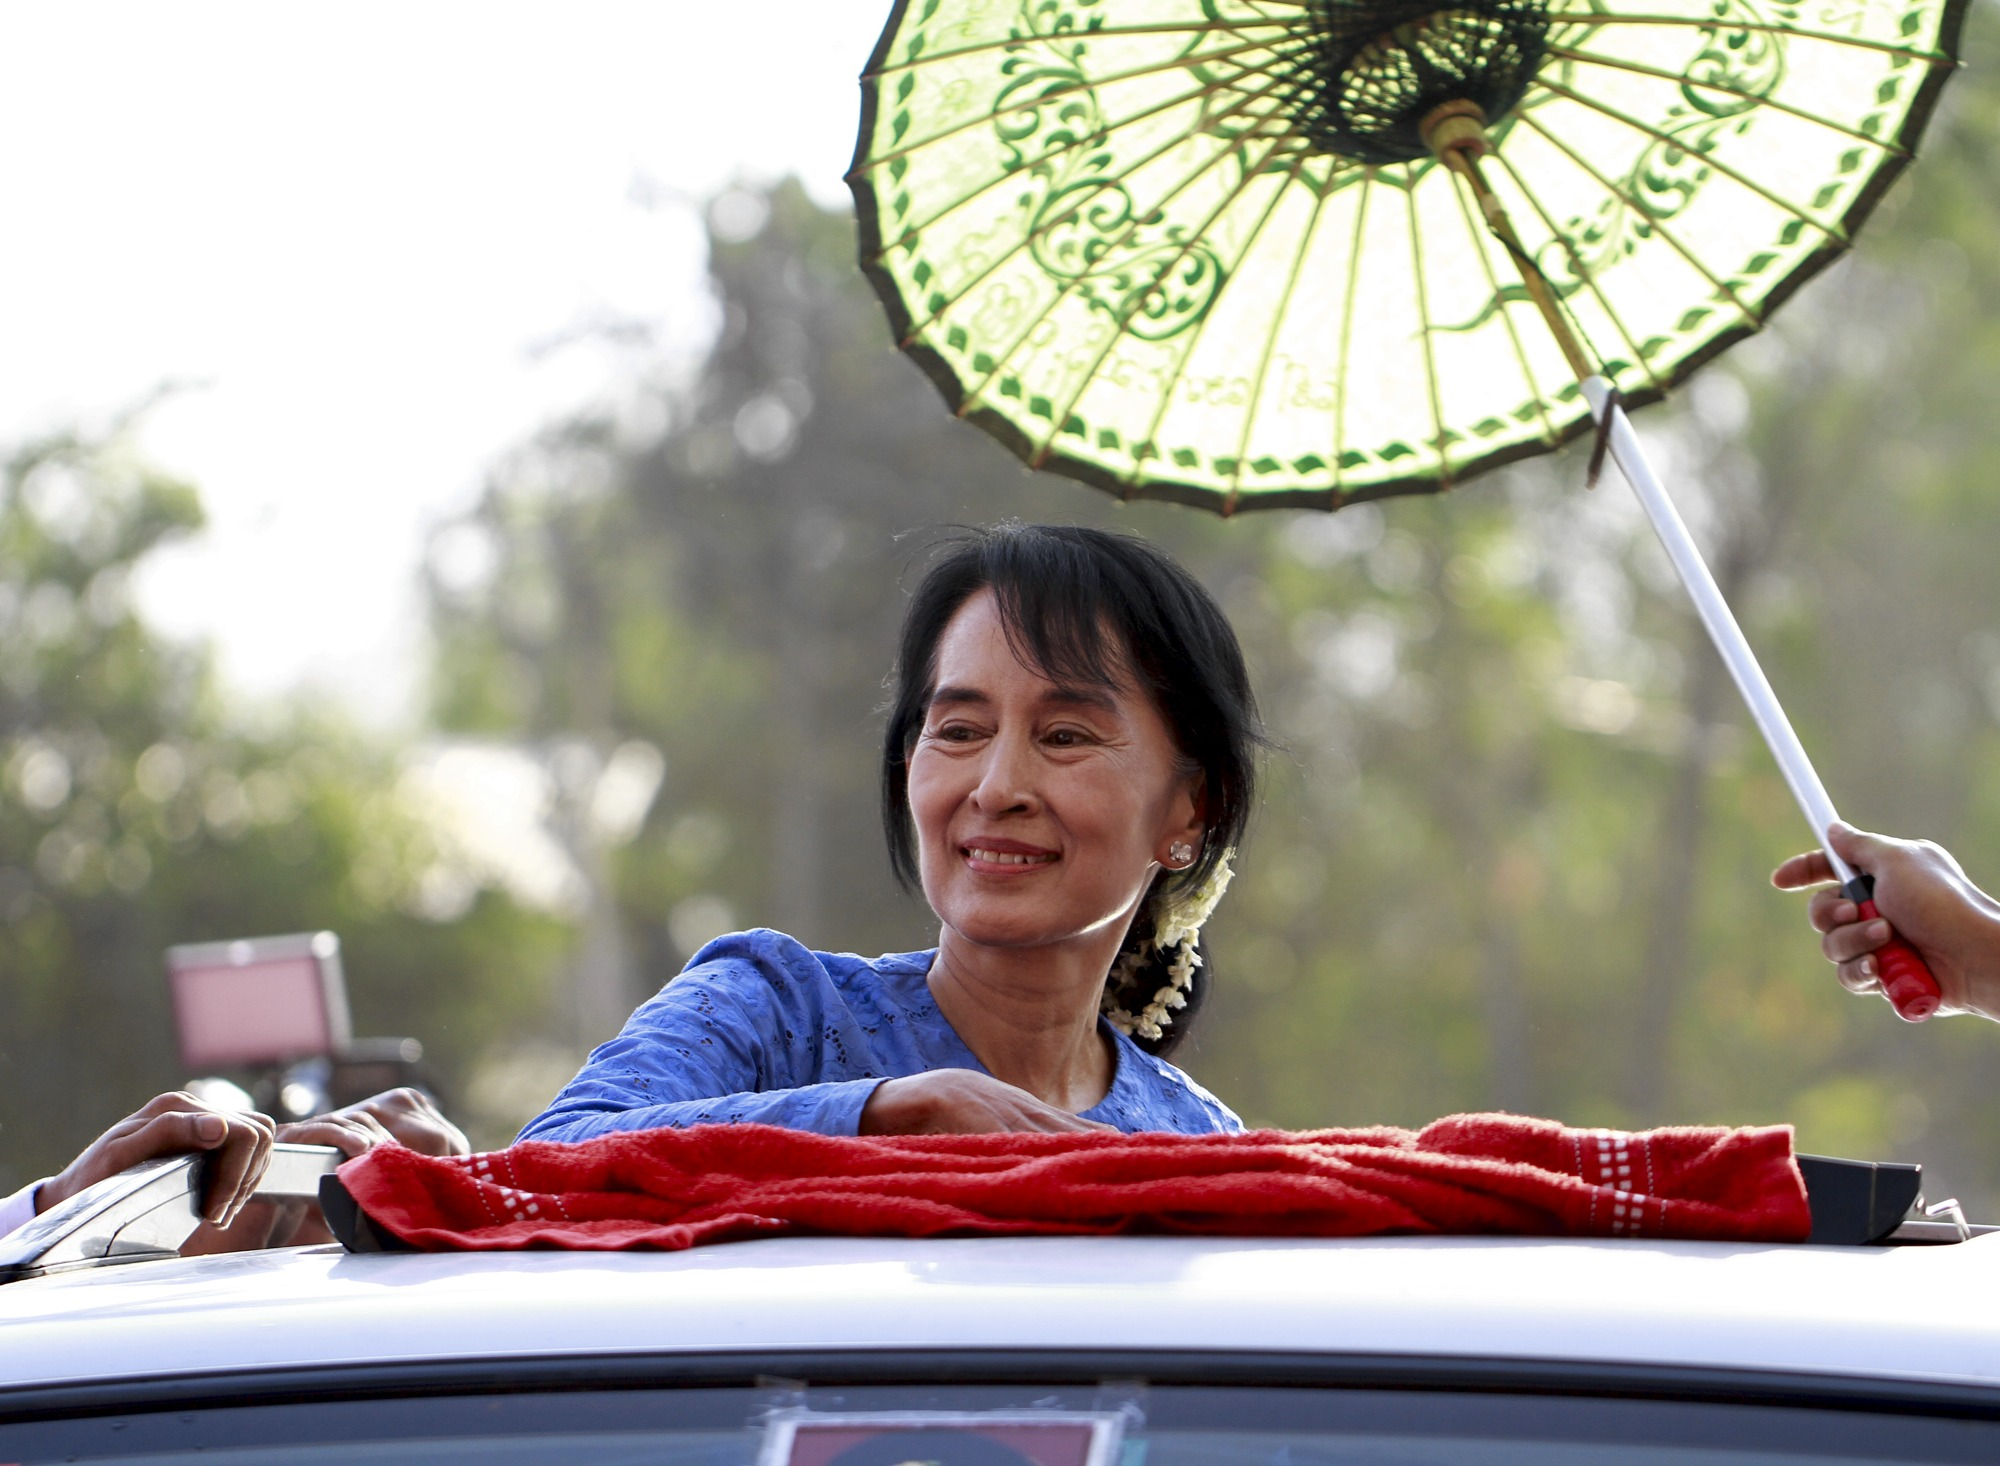 National League for Democracy leader Aung San Suu Kyi during the 2012 campaign in Burma. Image via Wikipedia Commons.